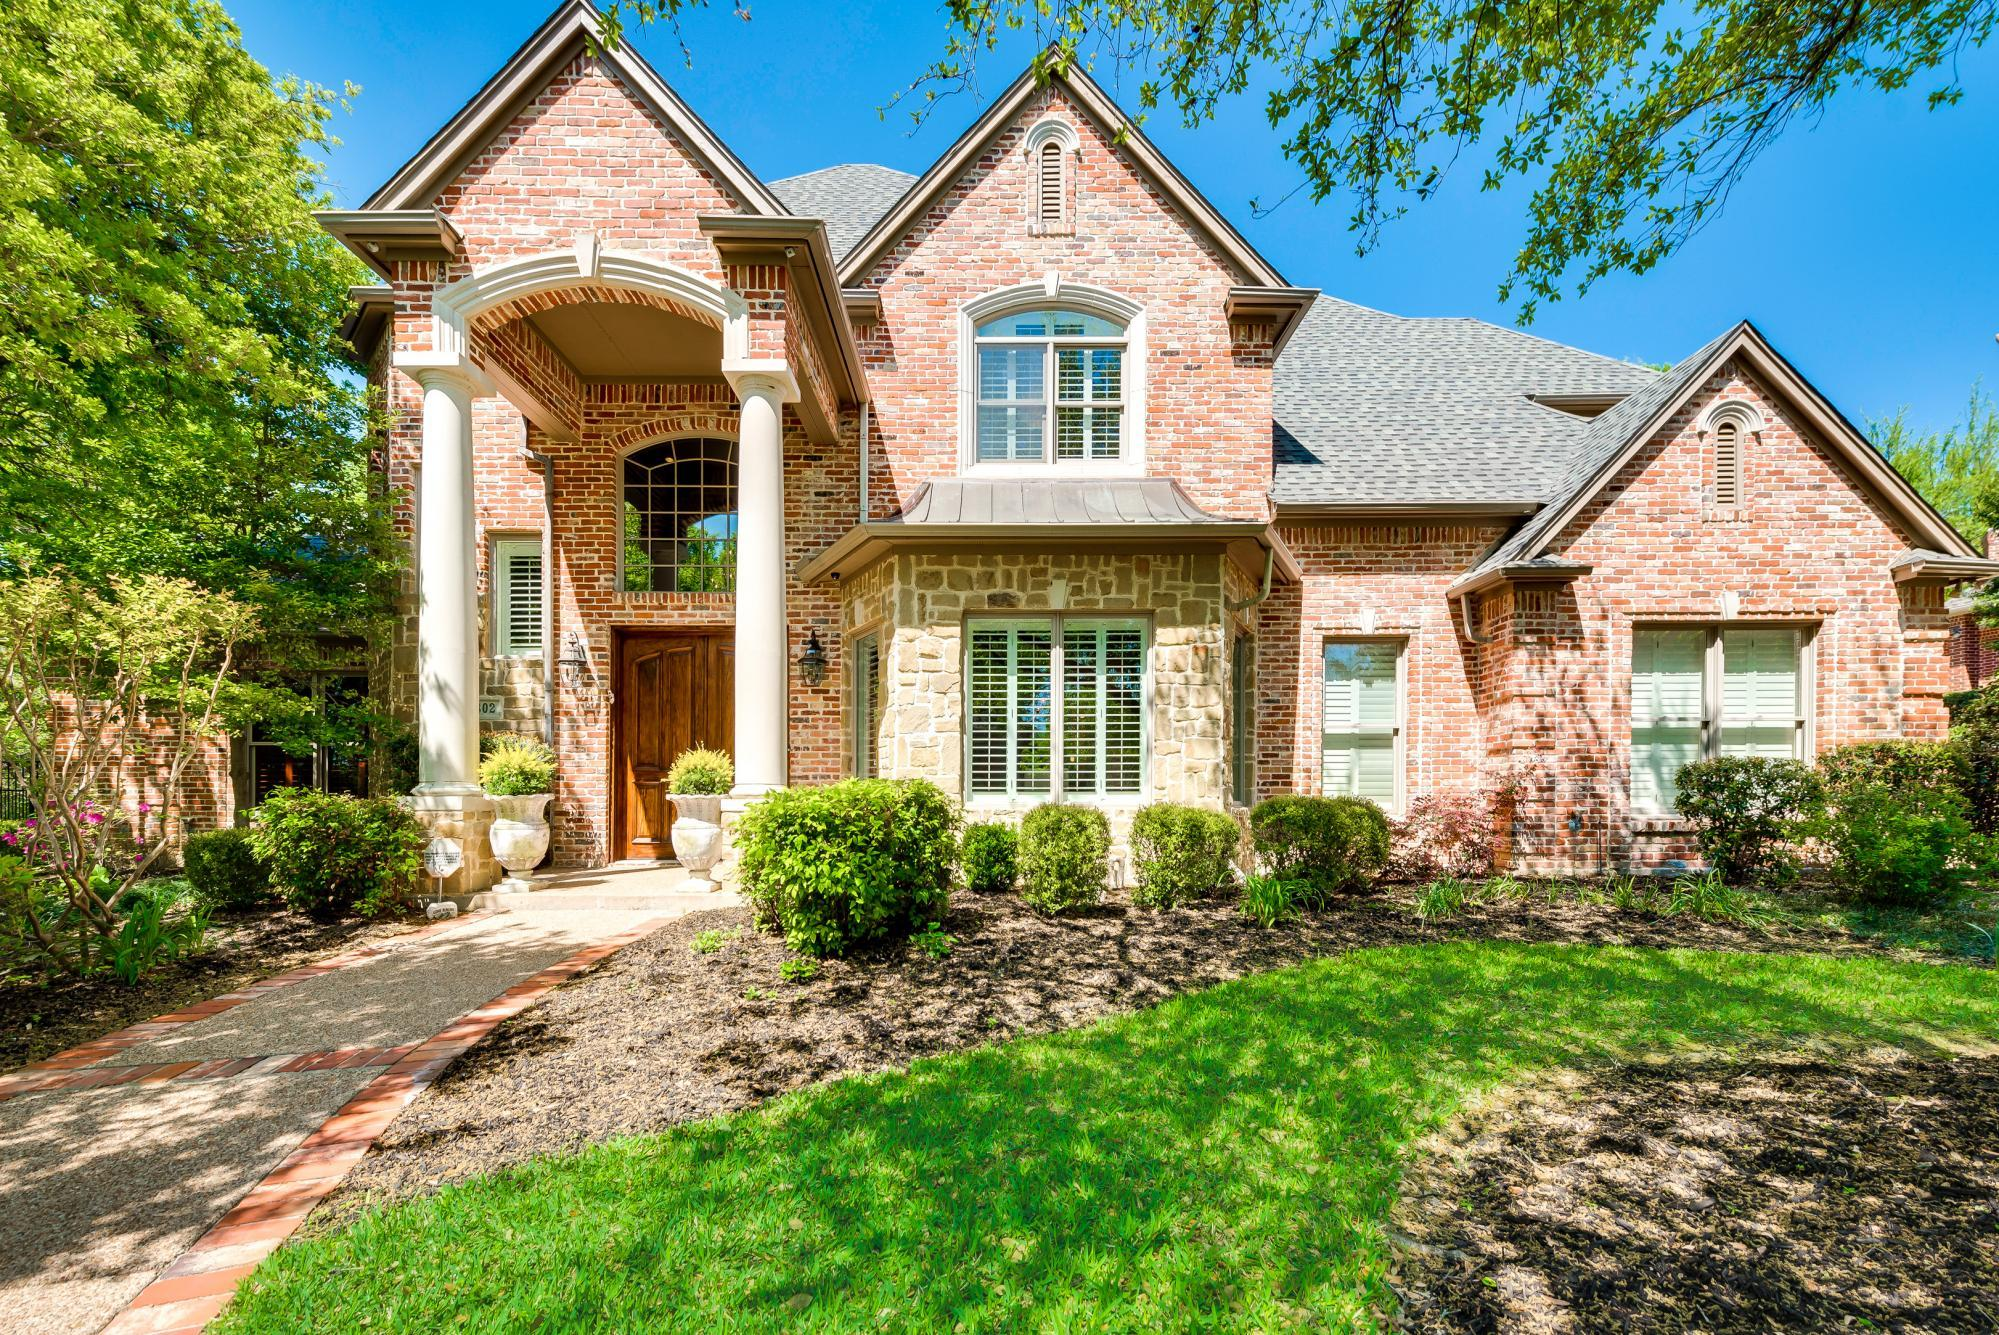 San Antonio homes for sale - VIP Realty